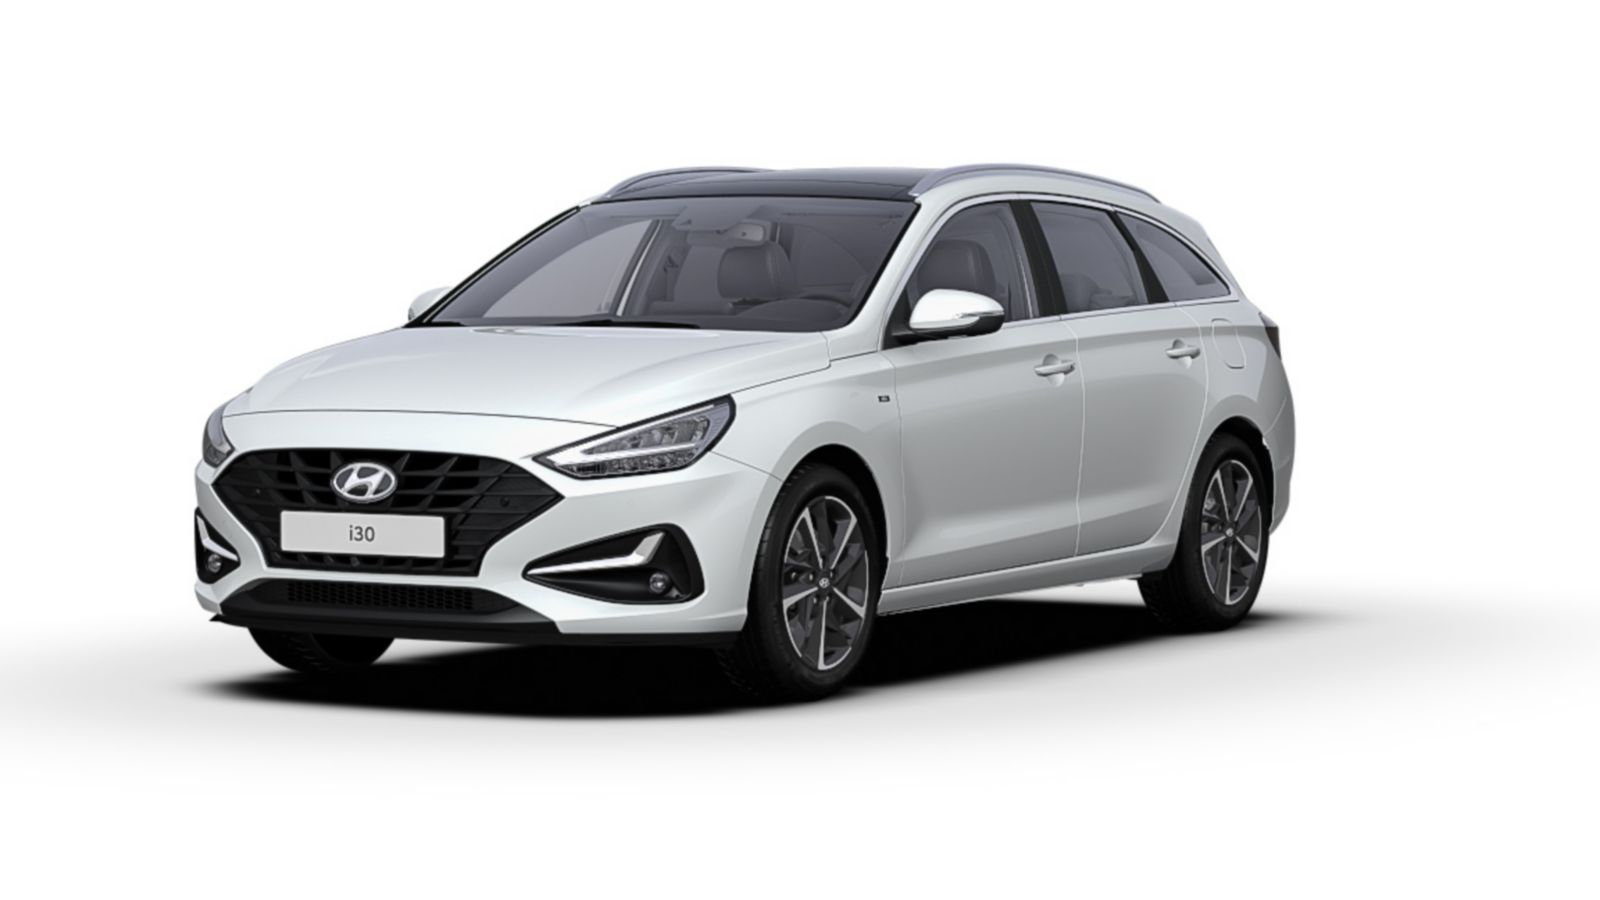 Front side view of the new Hyundai i30 Wagon in the colour Polar White.